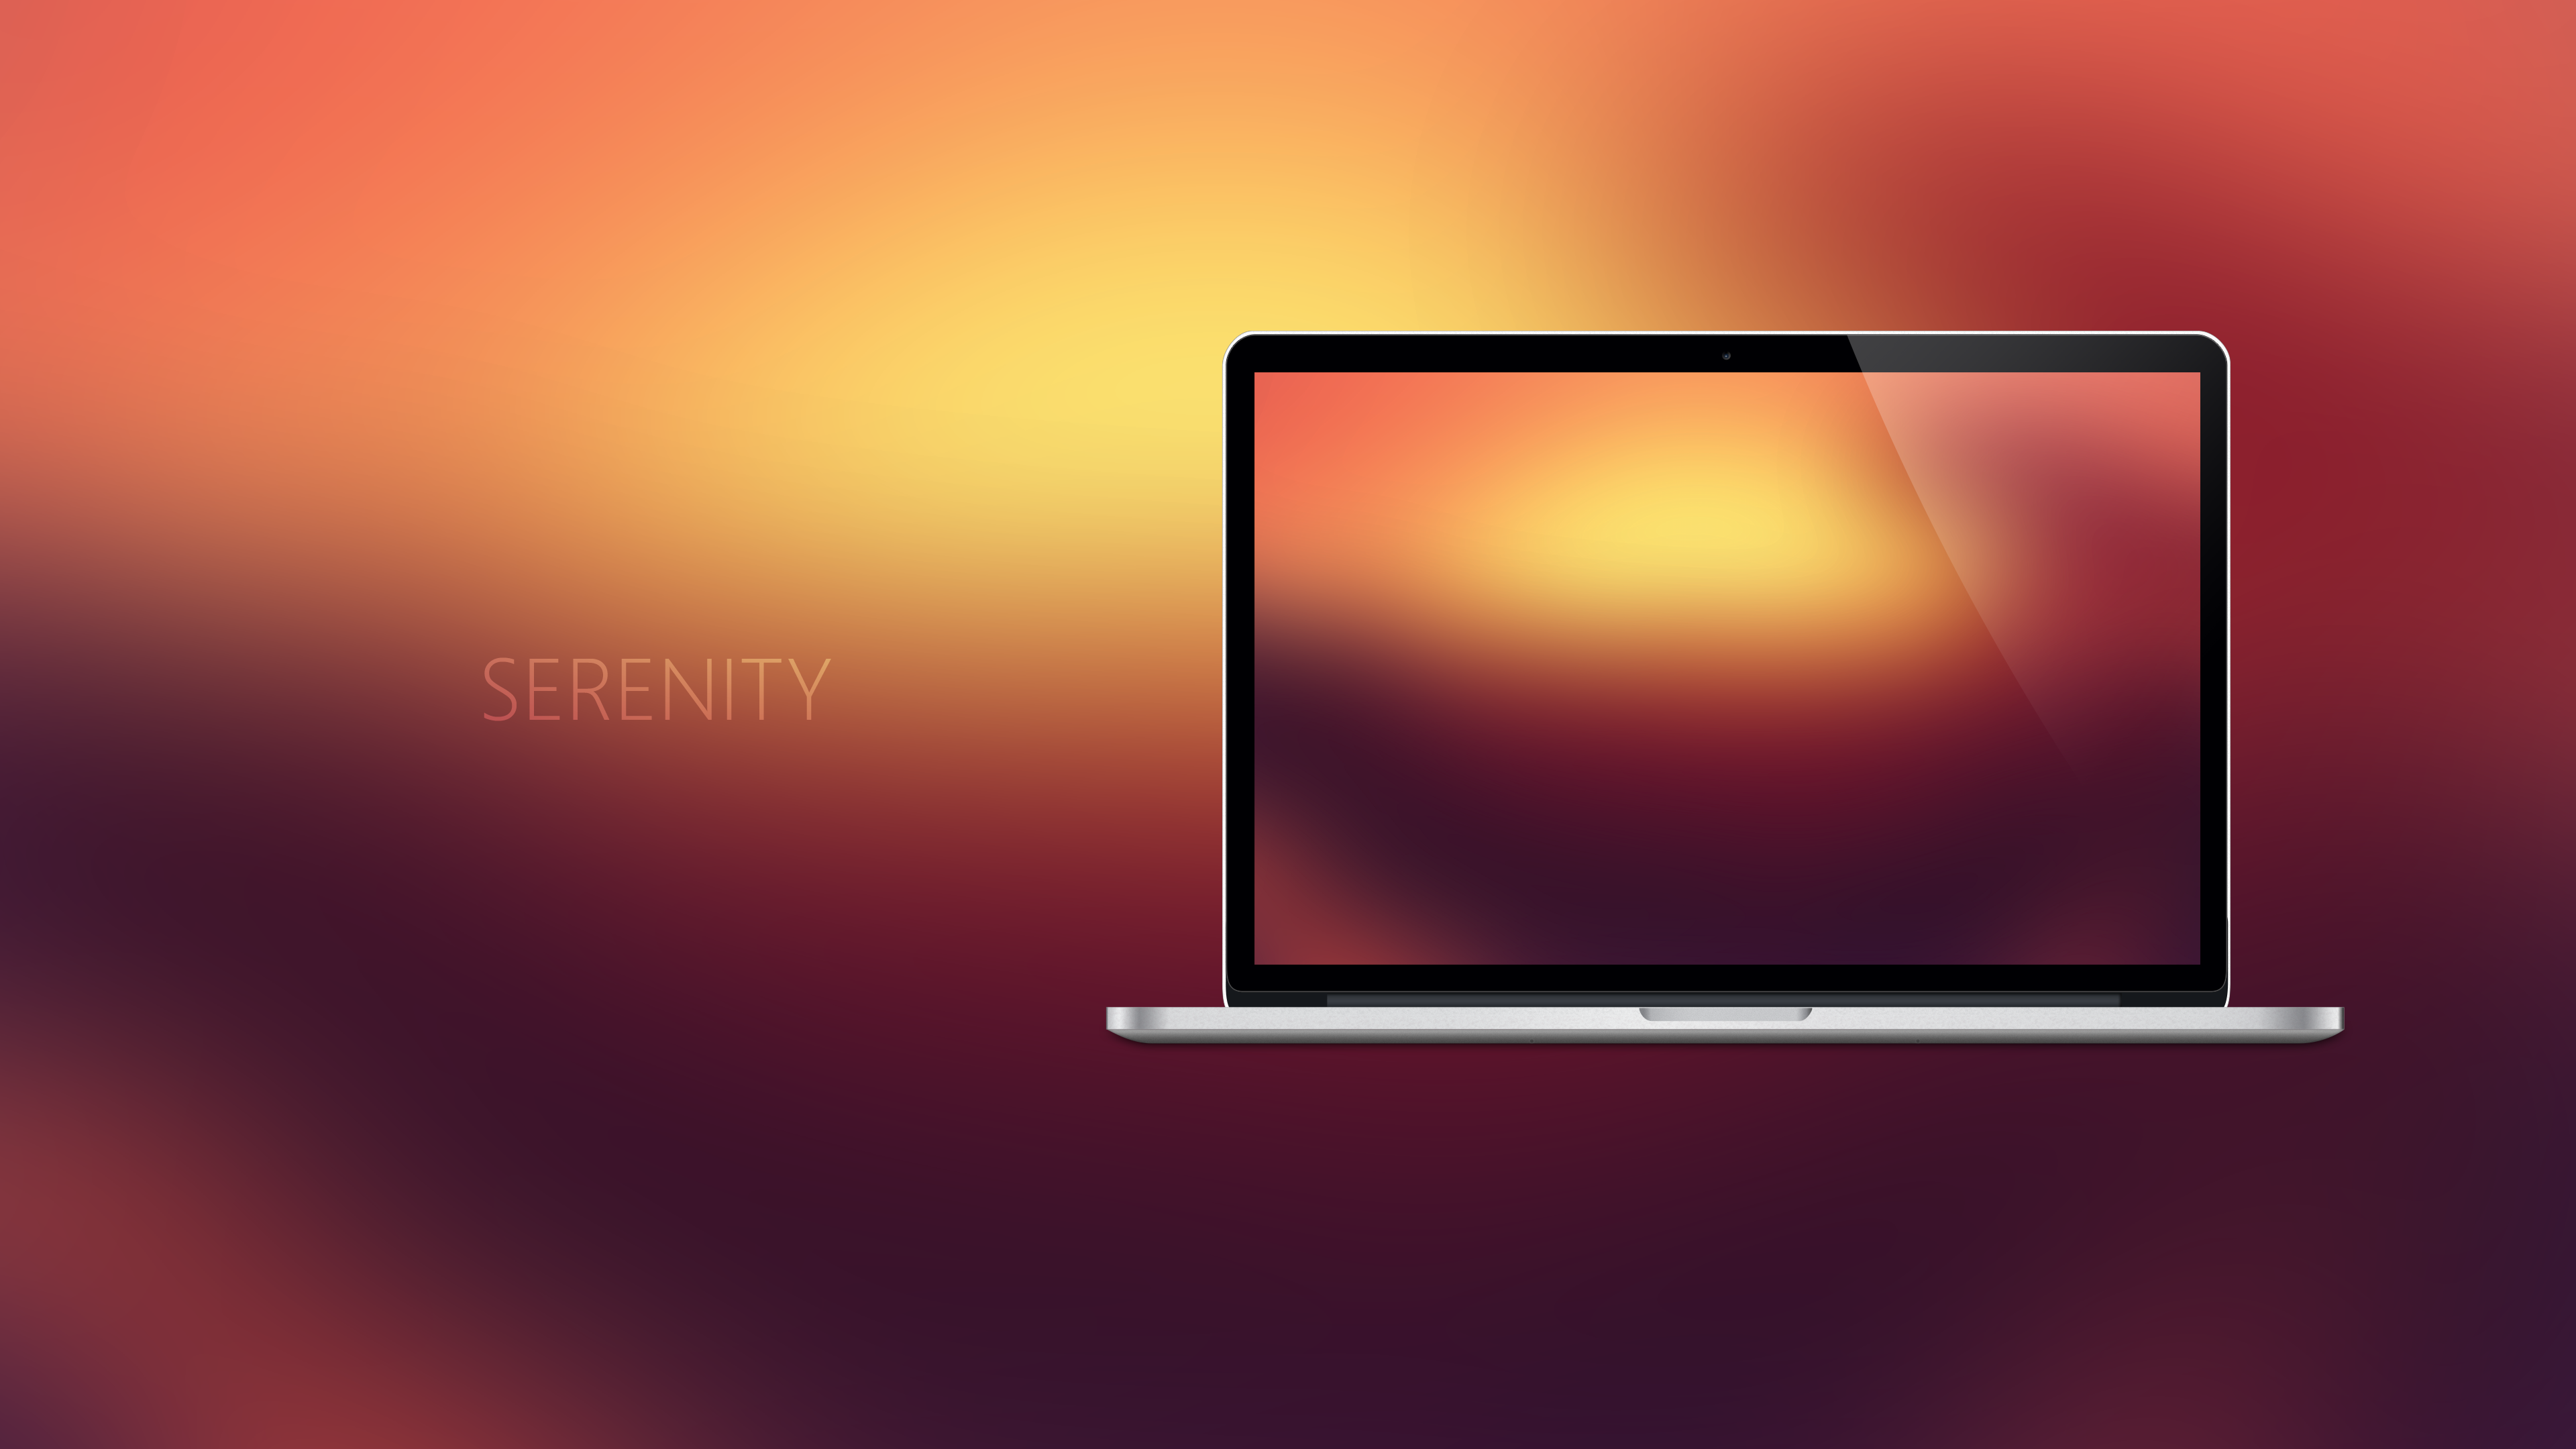 SERENITY - Coloured Expression Wallpapers